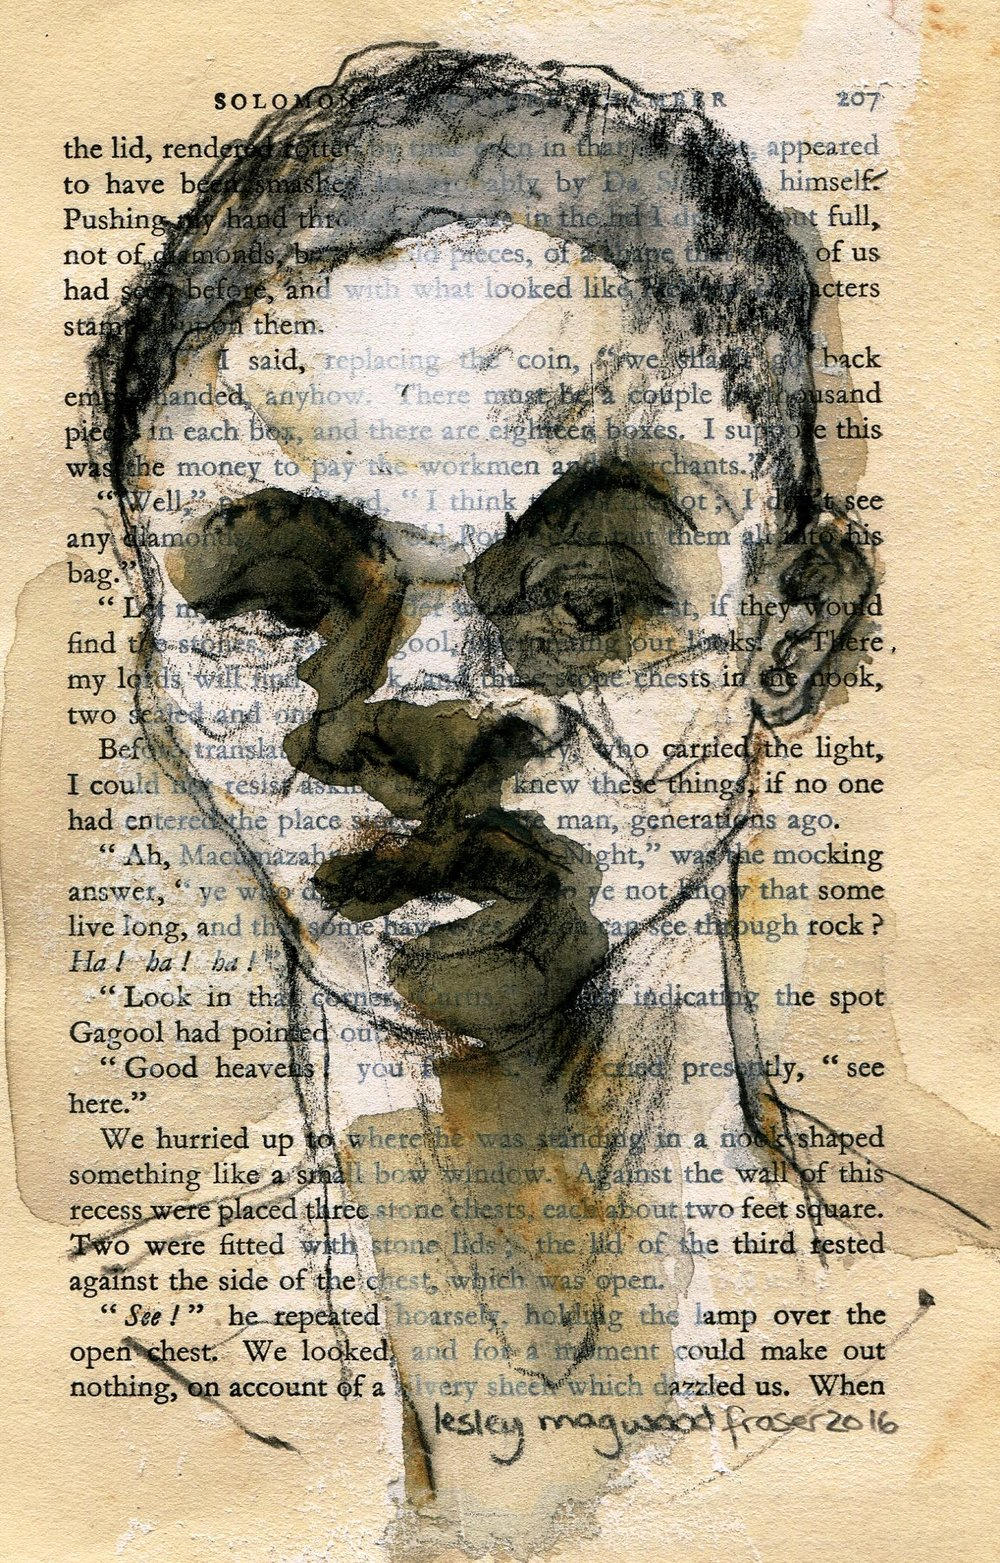 76c Lesley  Magwood Fraser, Promise Page 207, Aquarelle wash on book pages.jpg